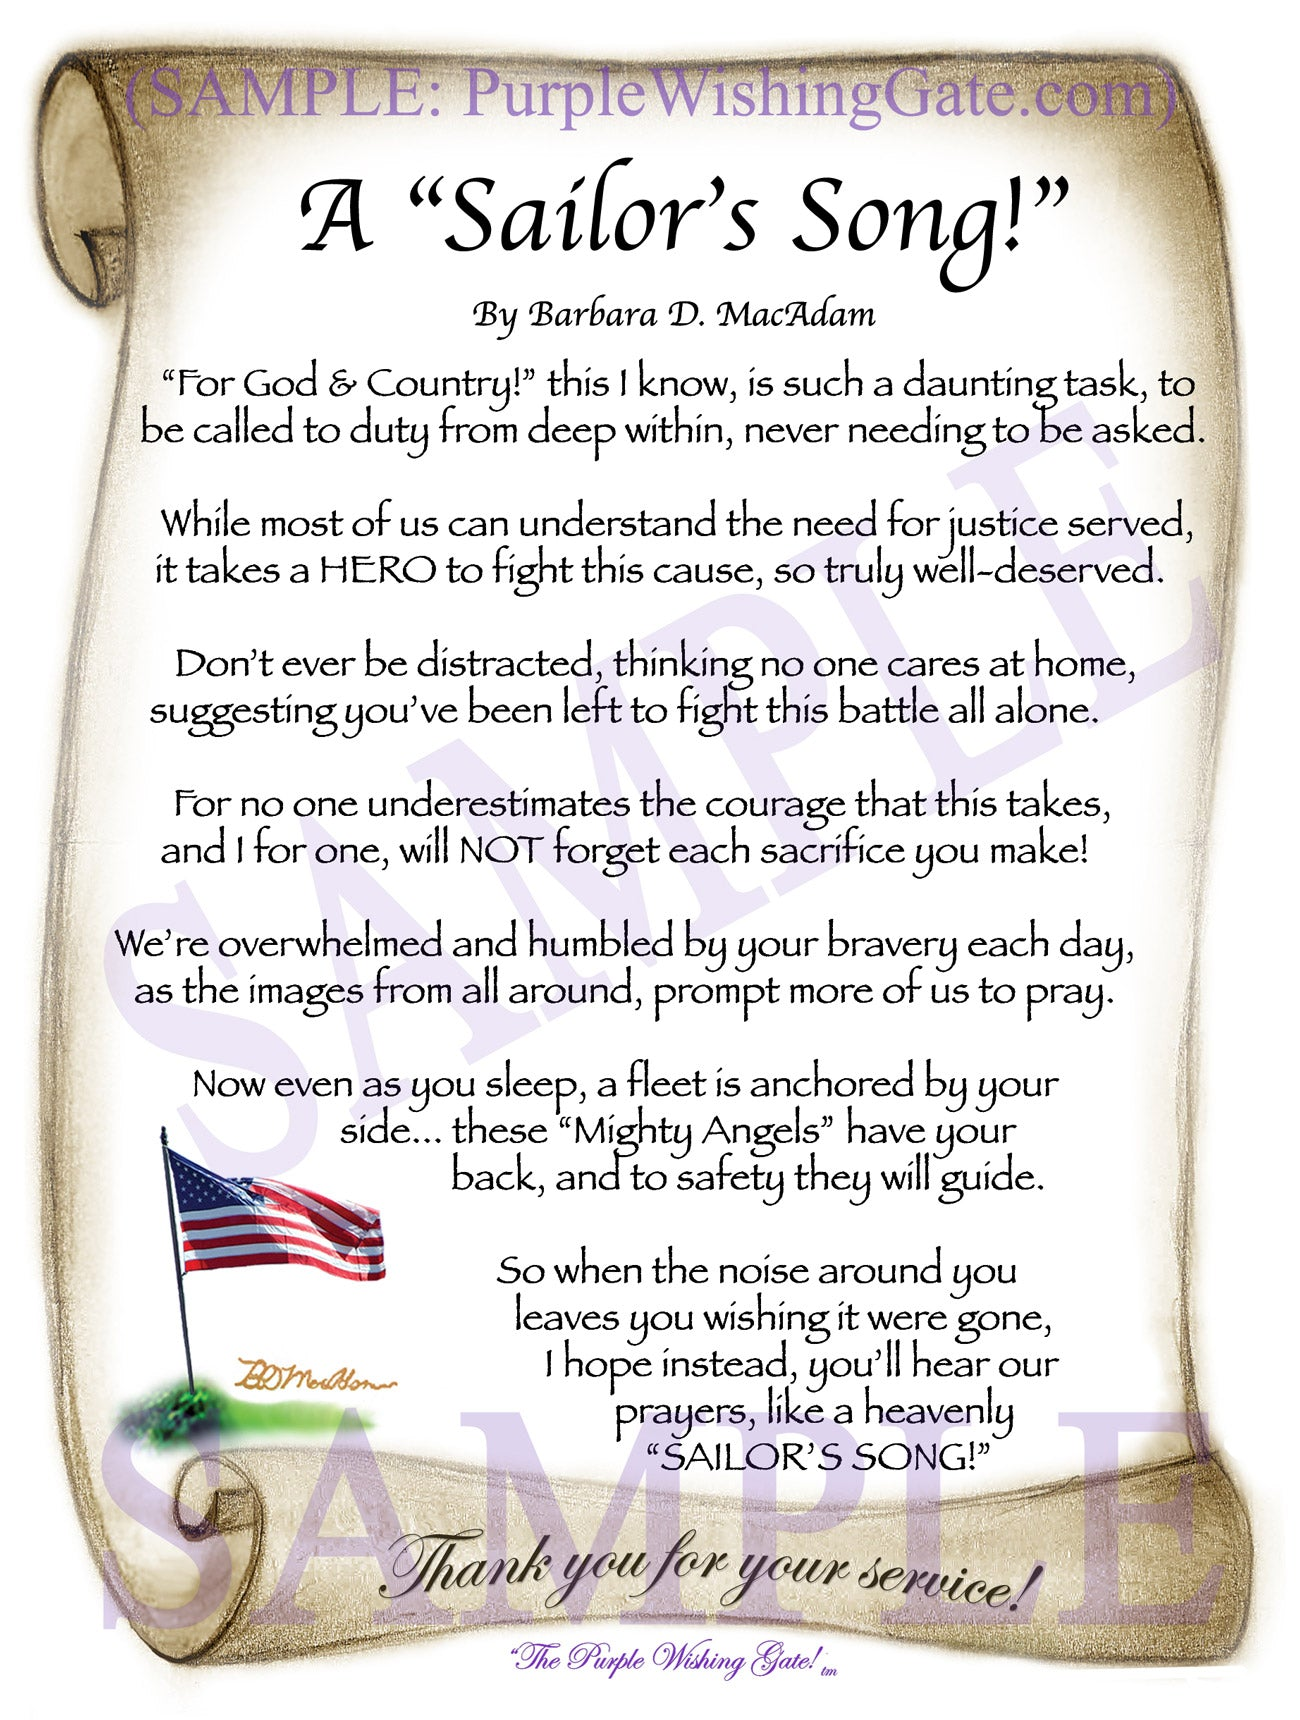 A Sailor's Song! - Military Gift - PurpleWishingGate.com